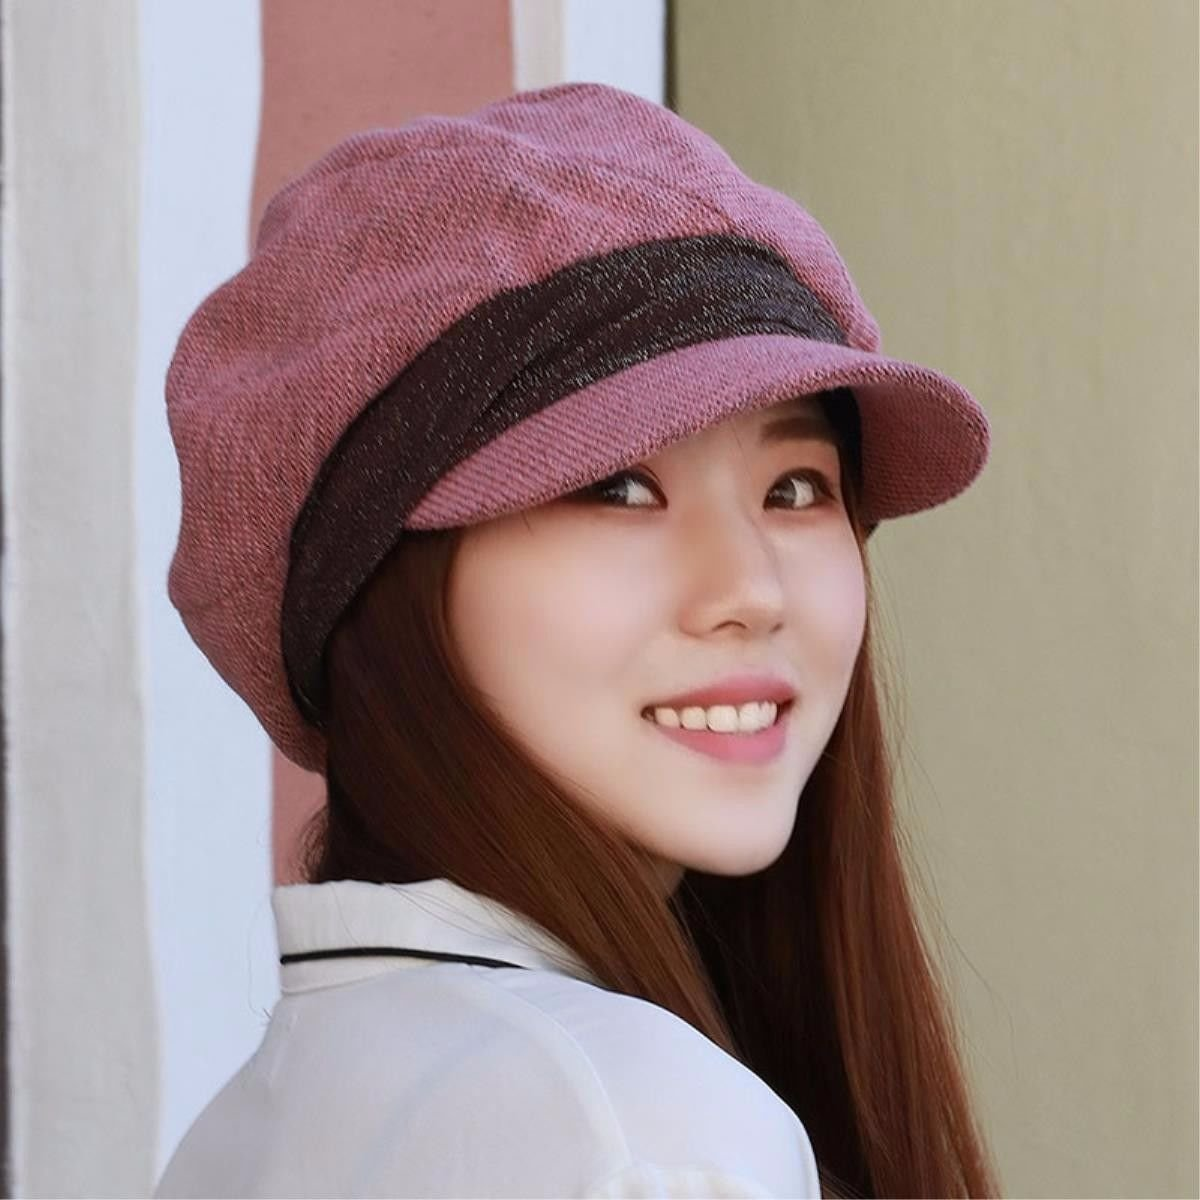 Amazon.com: LONFENN Ladies Women Hats Spring Summer Beret Cap Of 1.80 Yuan Fashion Cap Mother Cap Black: Sports & Outdoors